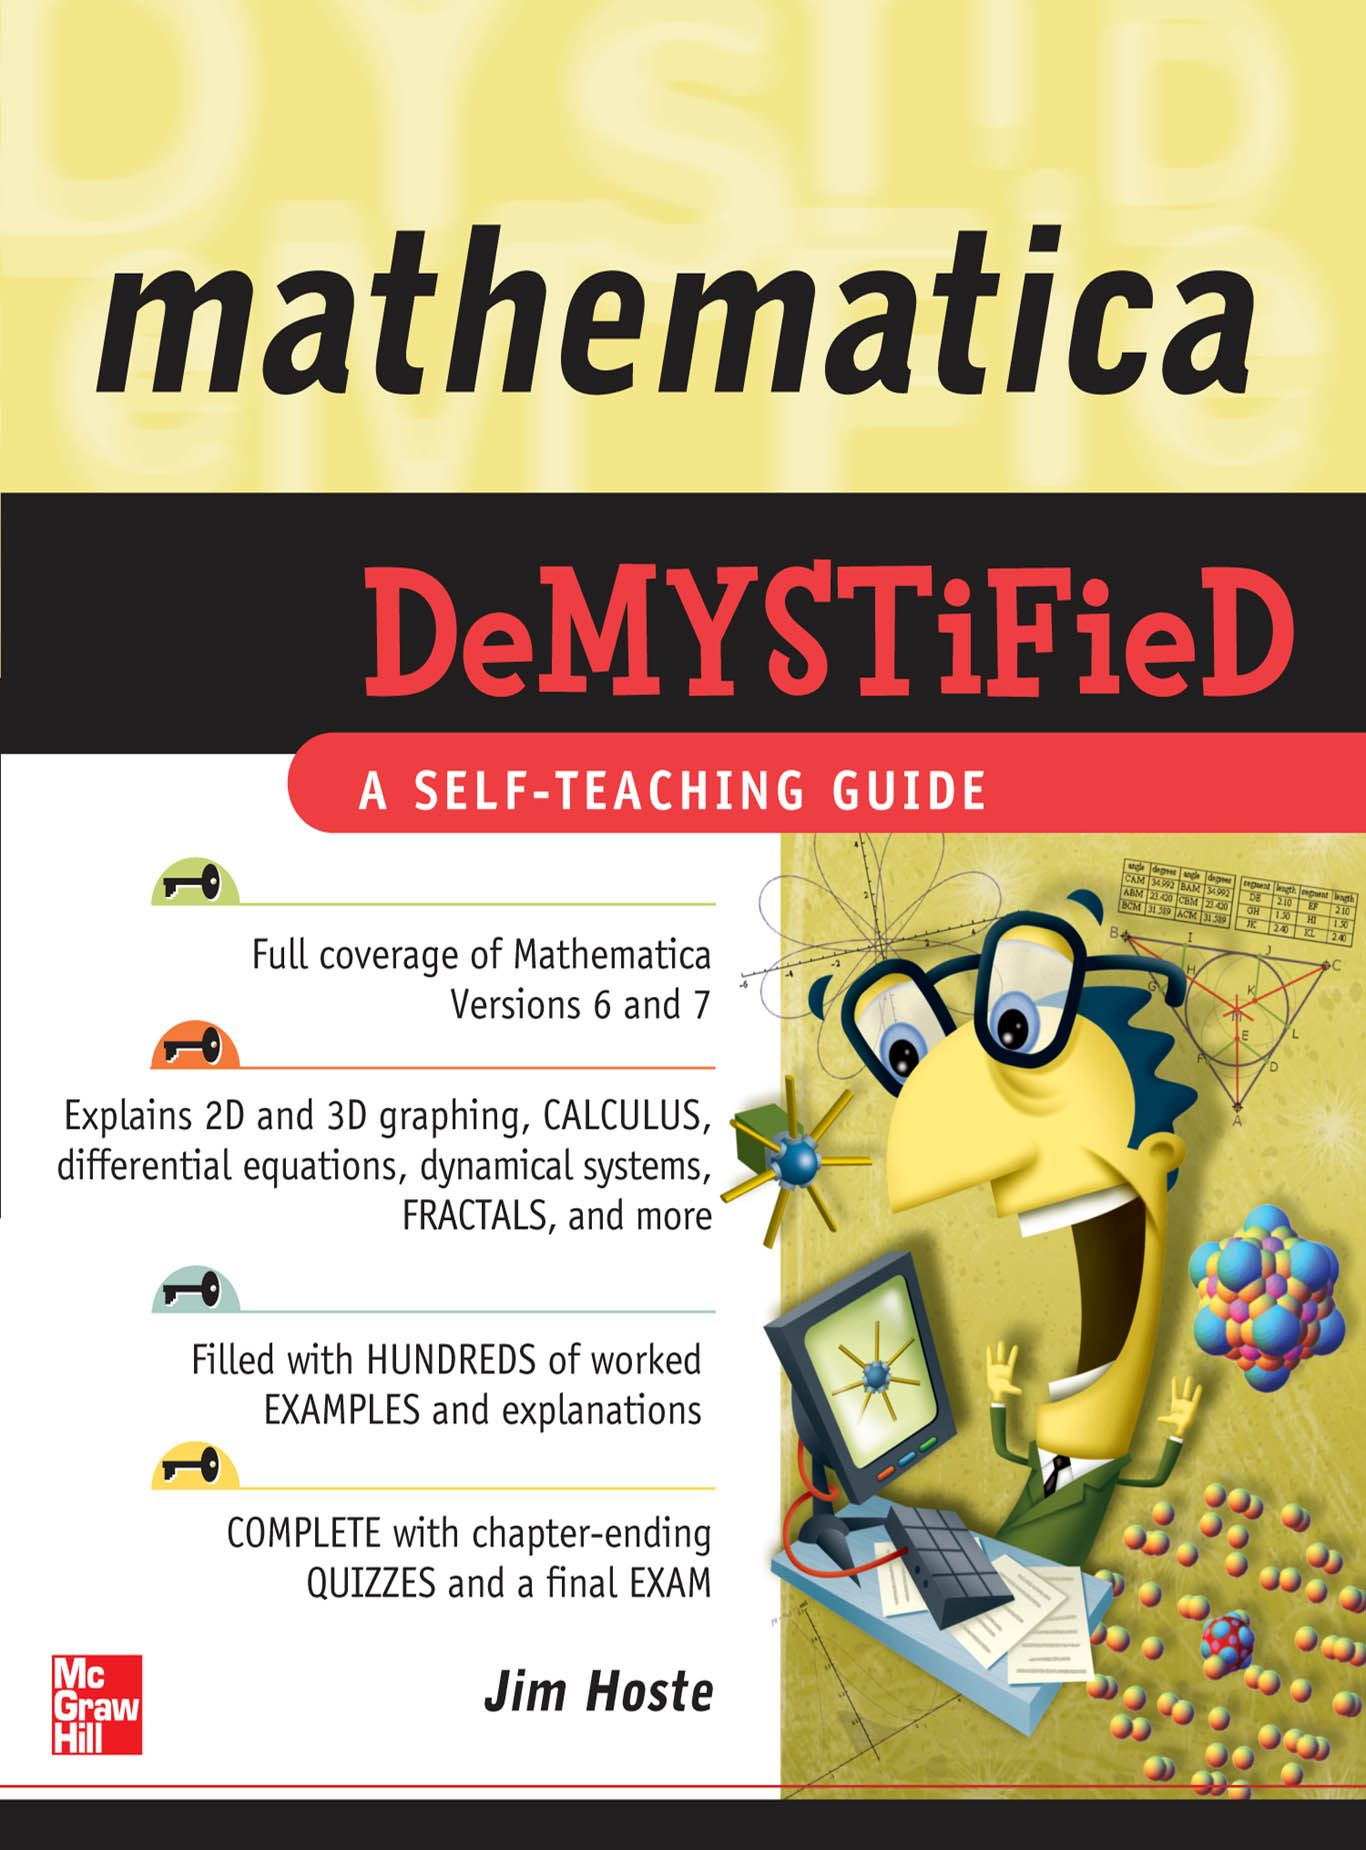 Mathematica DeMYSTiFied